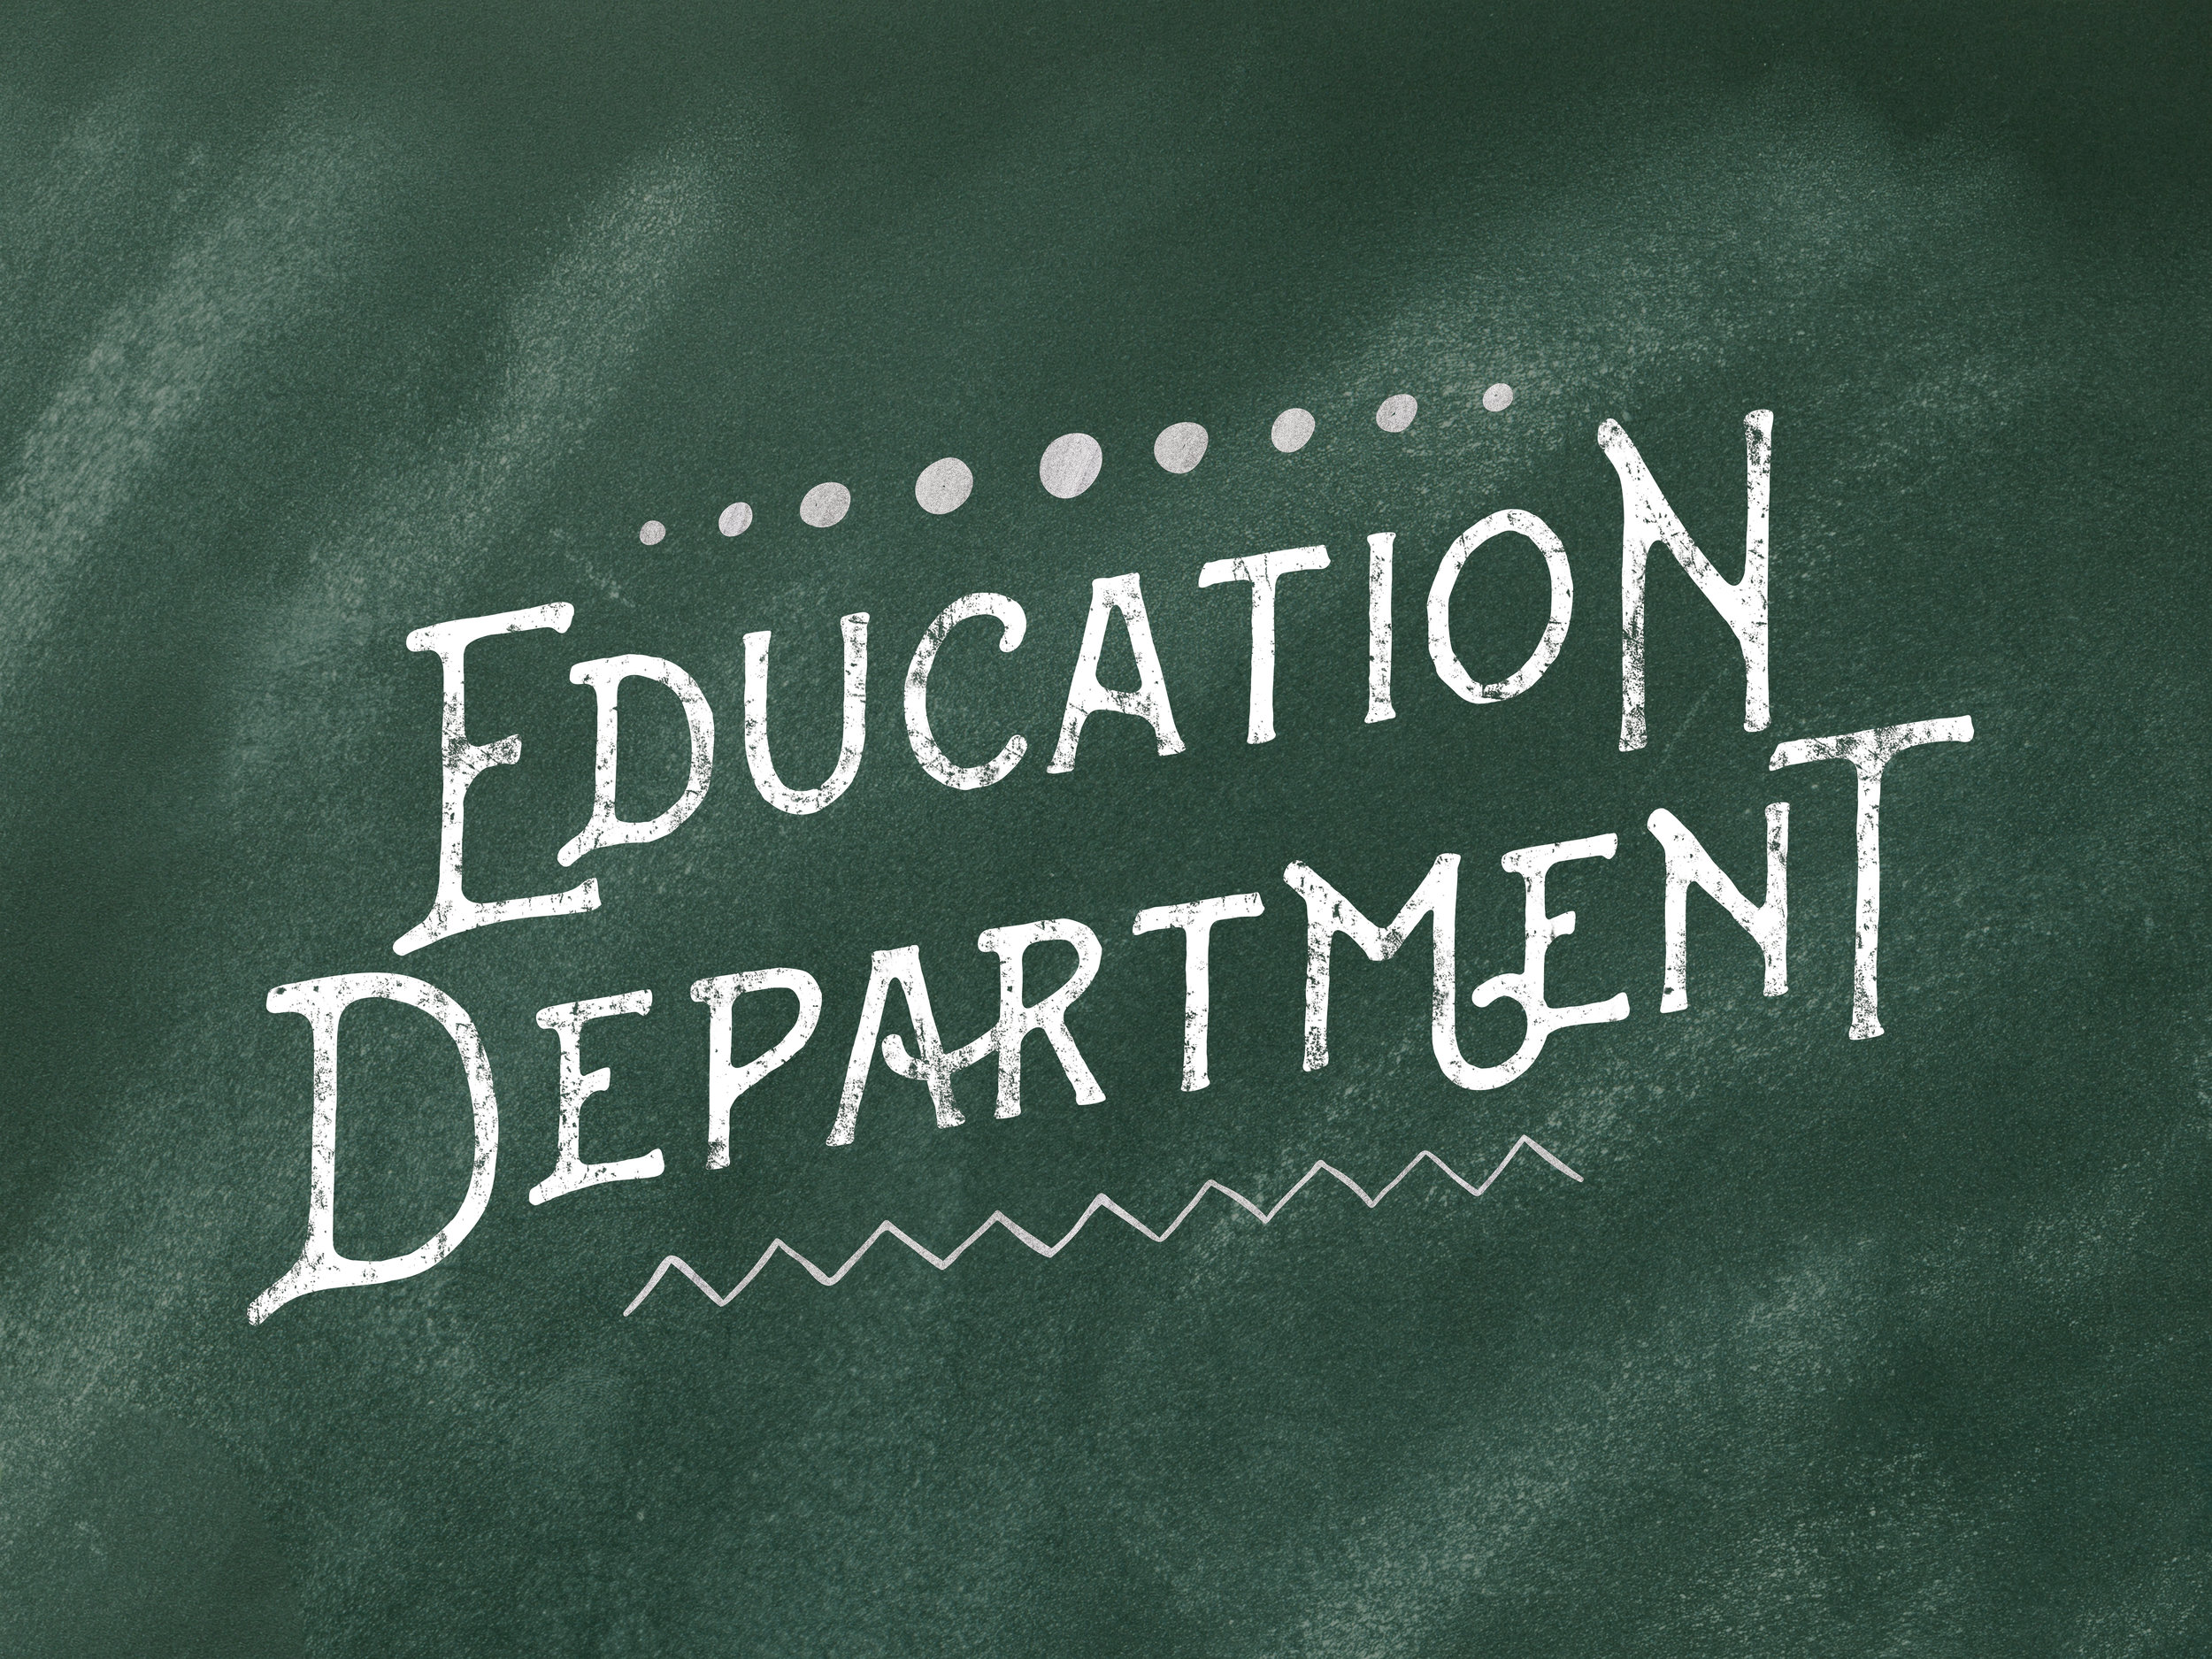 education-department-11x8.5.jpg